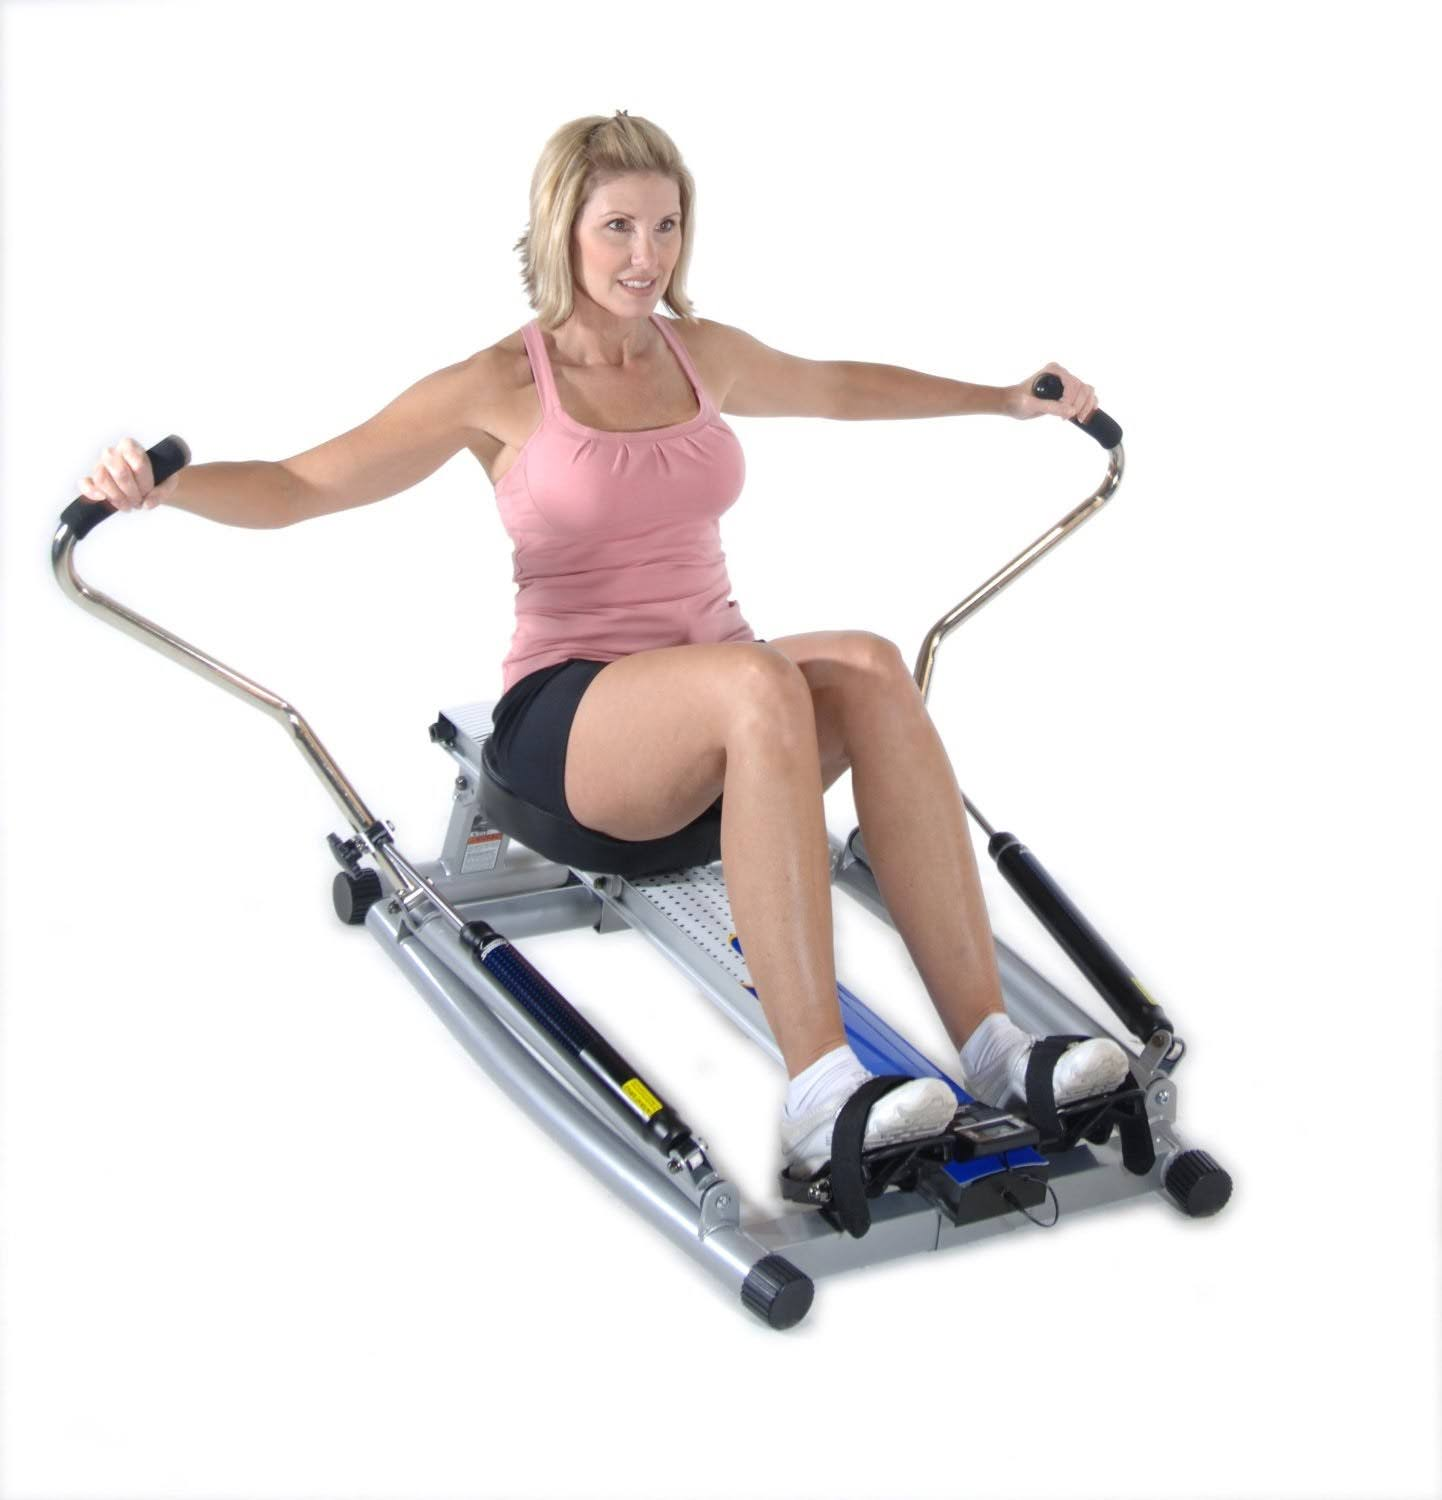 where can i buy a rowing machine